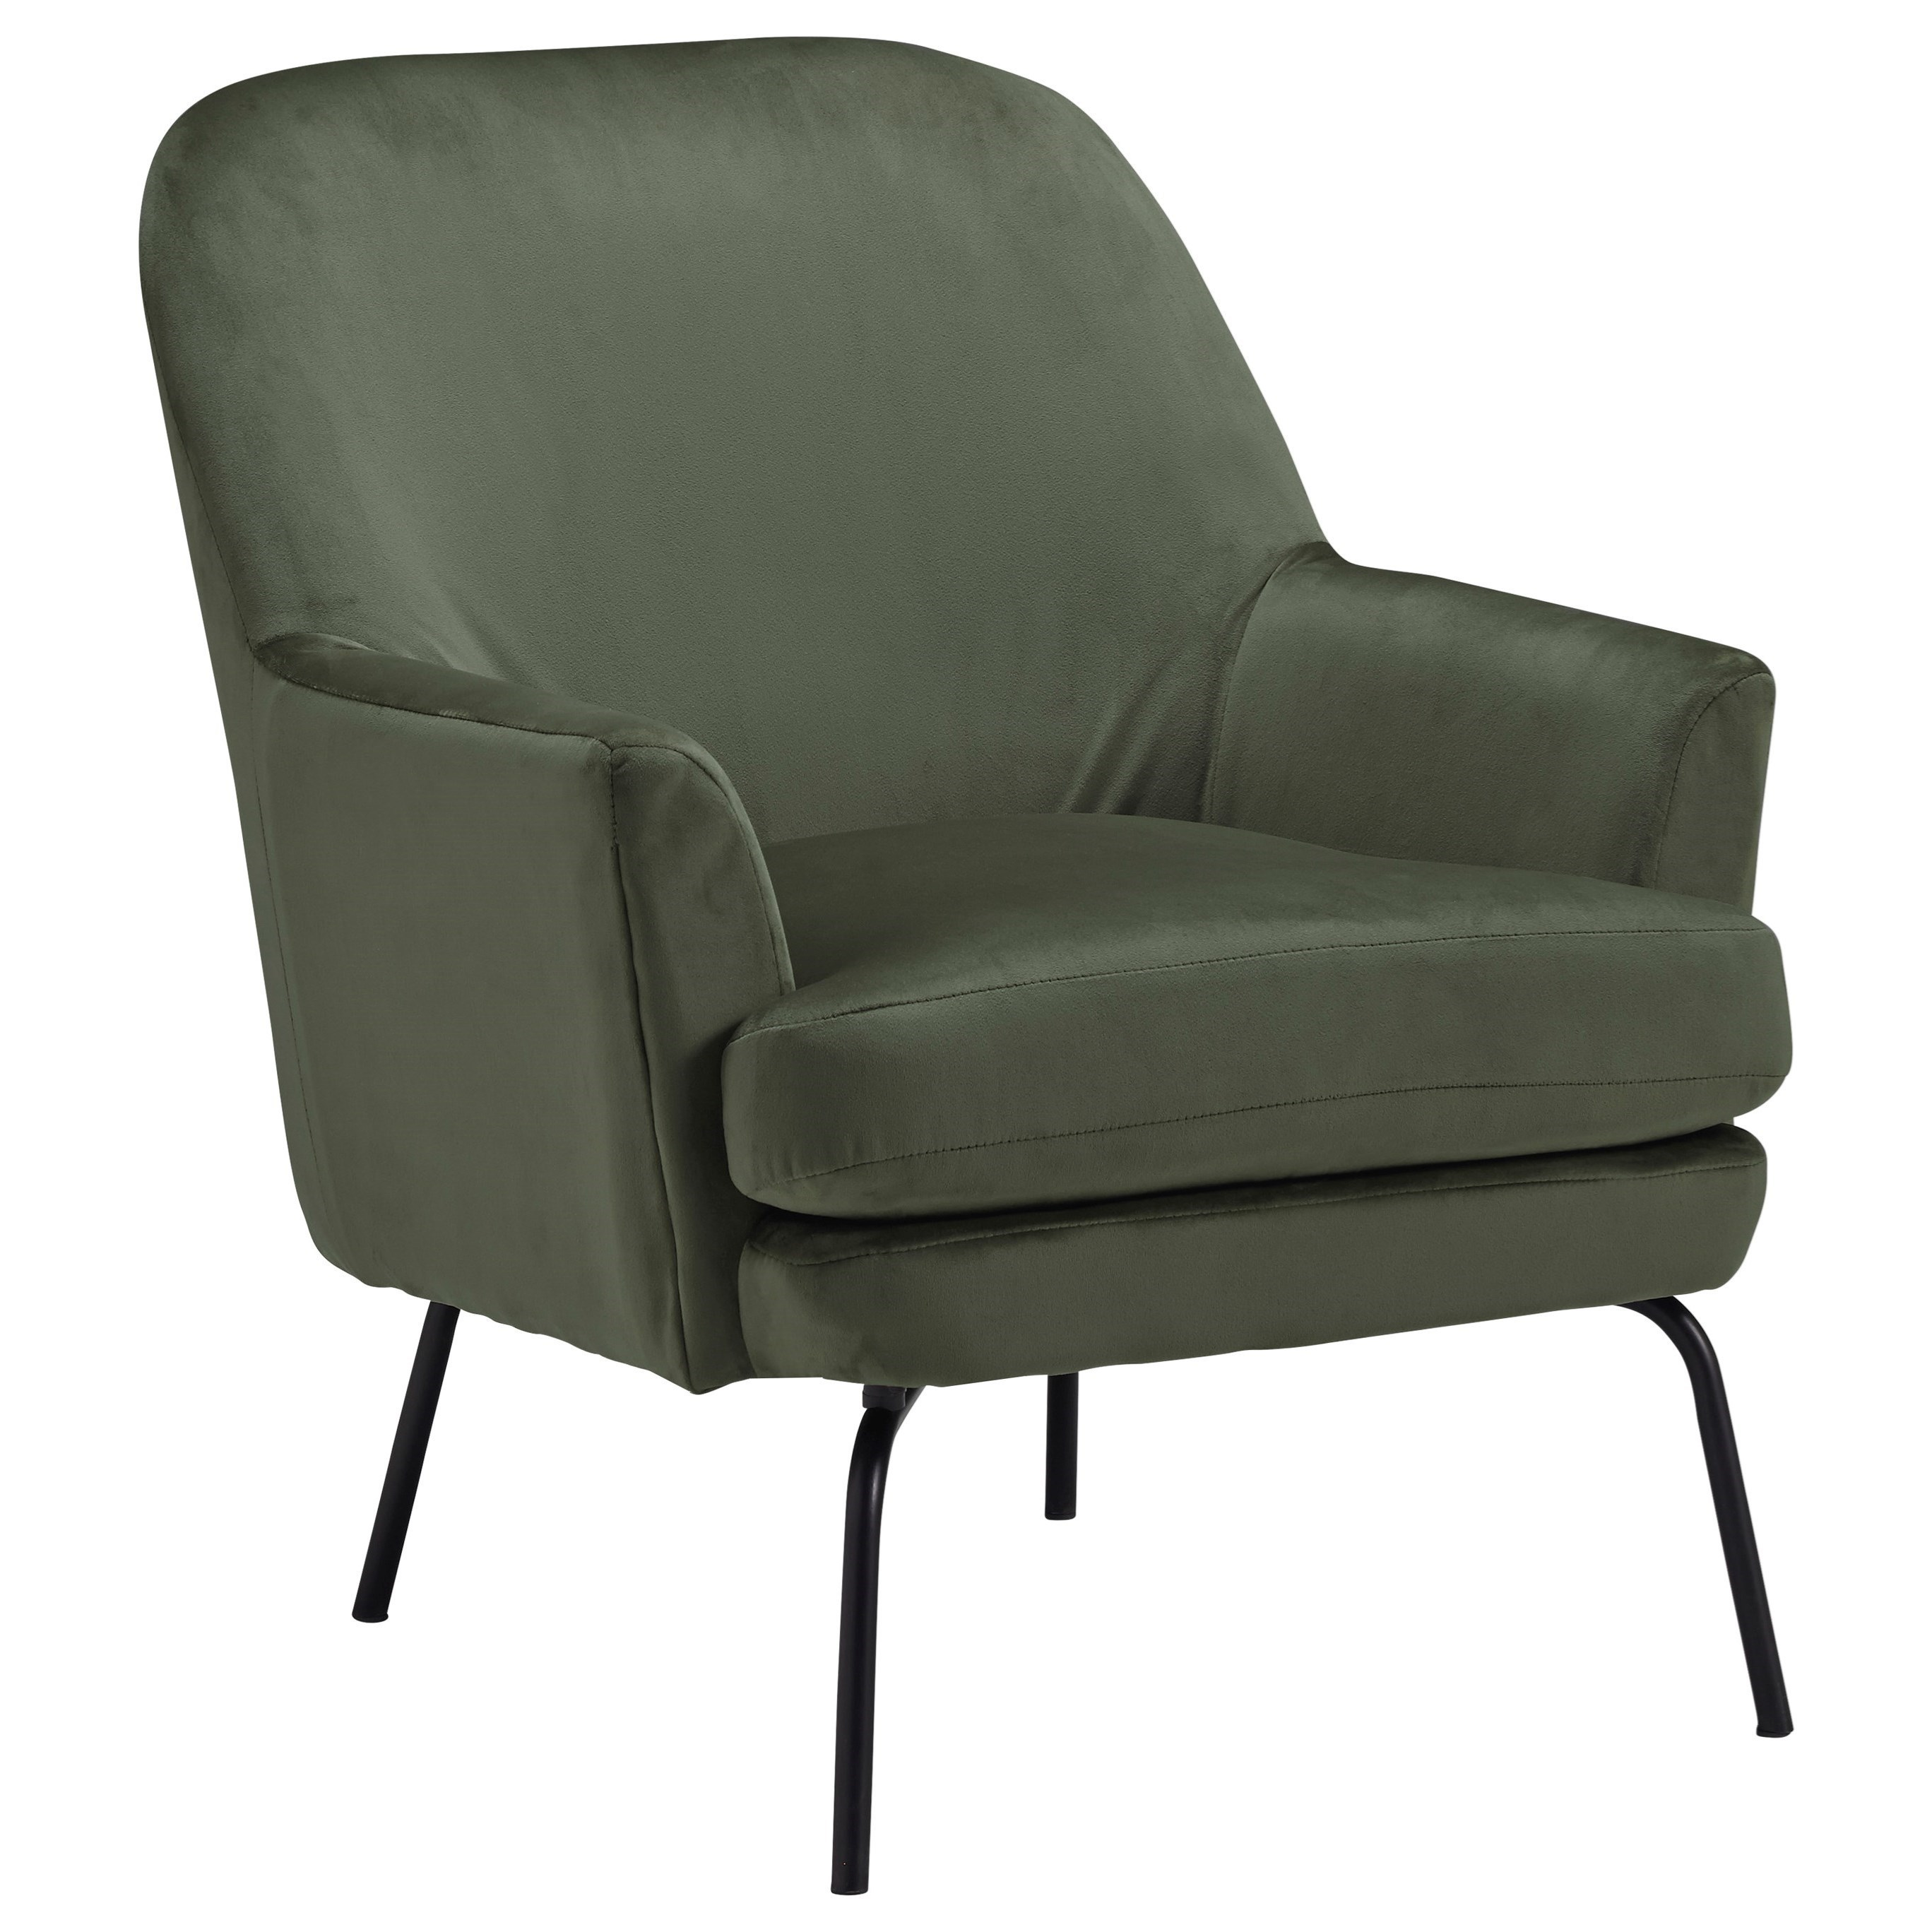 Picture of: Signature Design By Ashley Dericka Modern Accent Chair With Black Finish Metal Legs Royal Furniture Upholstered Chairs